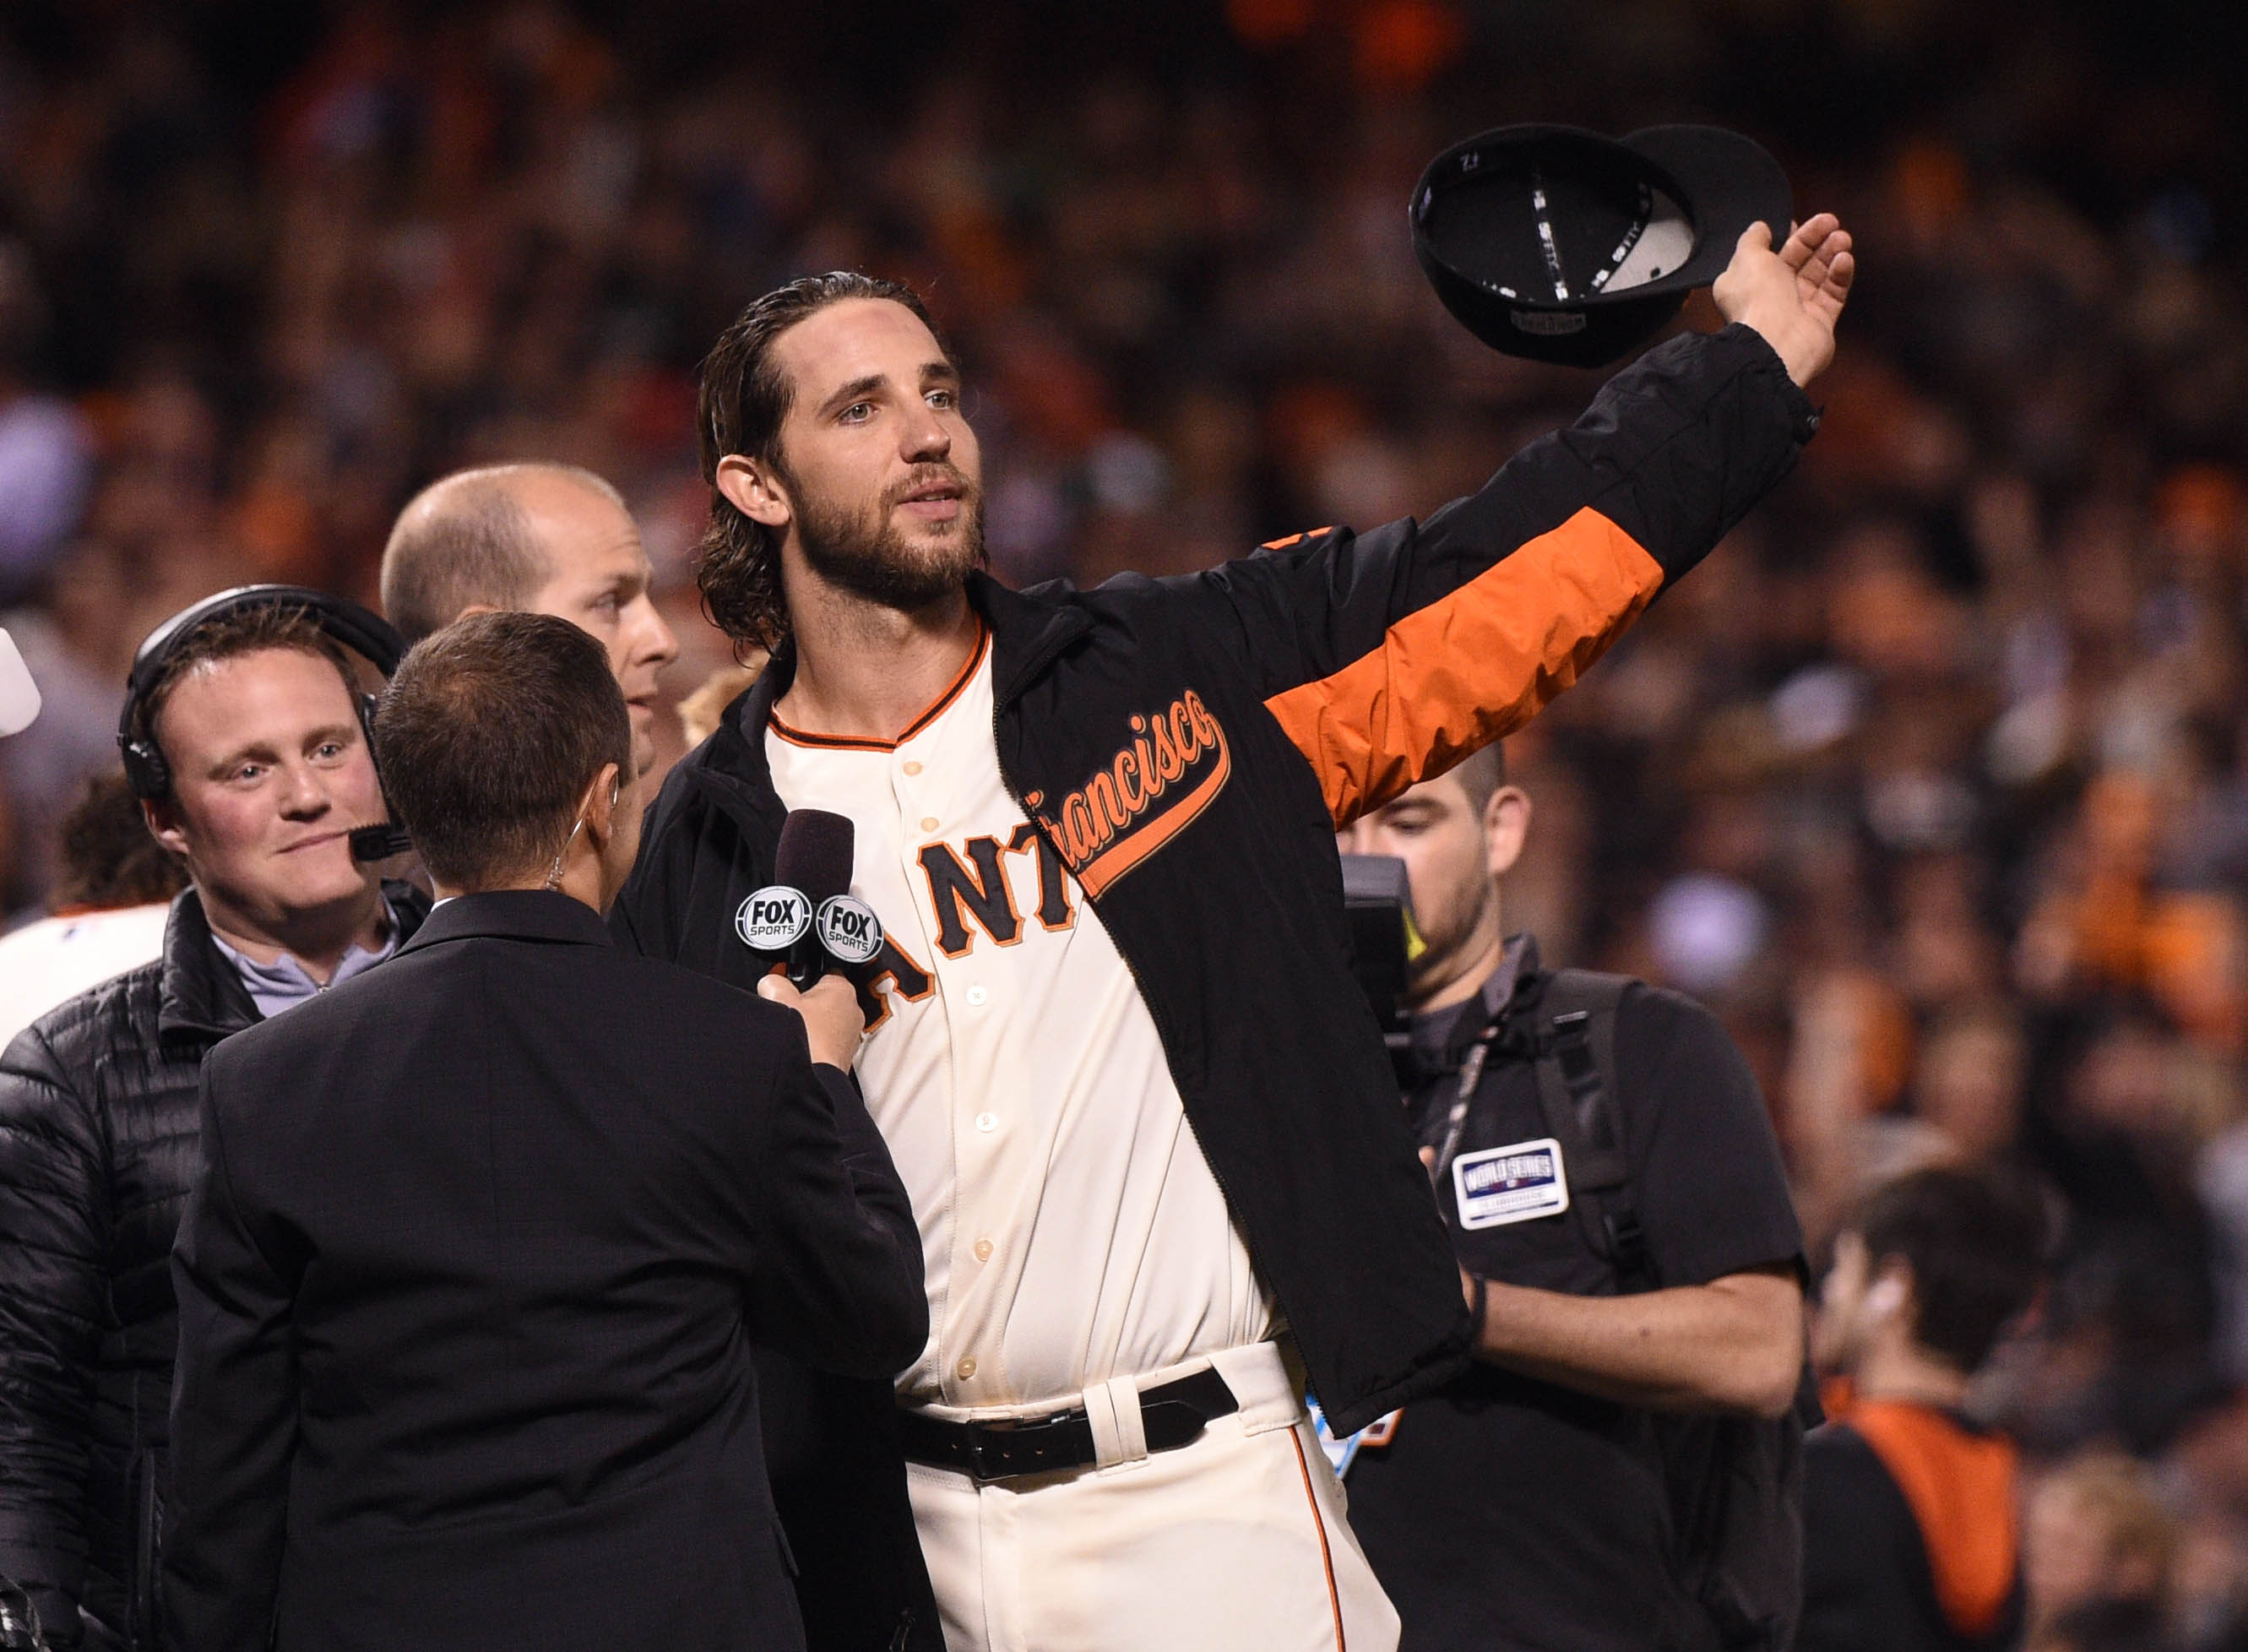 Madison Bumgarner after his Game 5 shutout. (USA TODAY Sports)